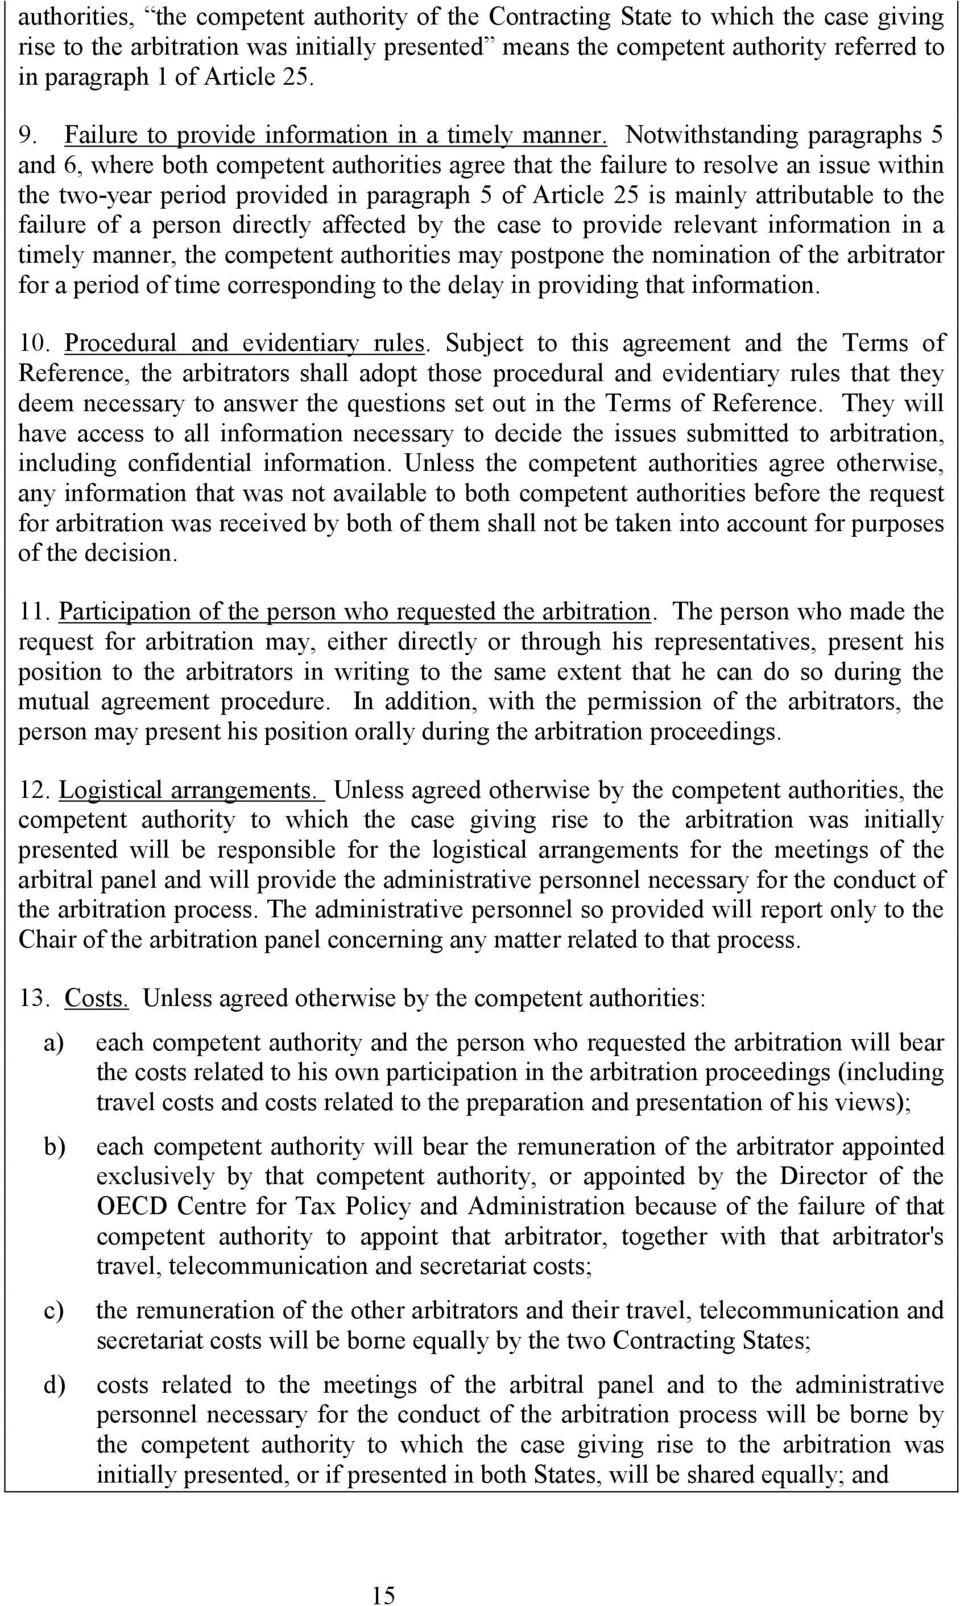 Notwithstanding paragraphs 5 and 6, where both competent authorities agree that the failure to resolve an issue within the two-year period provided in paragraph 5 of Article 25 is mainly attributable